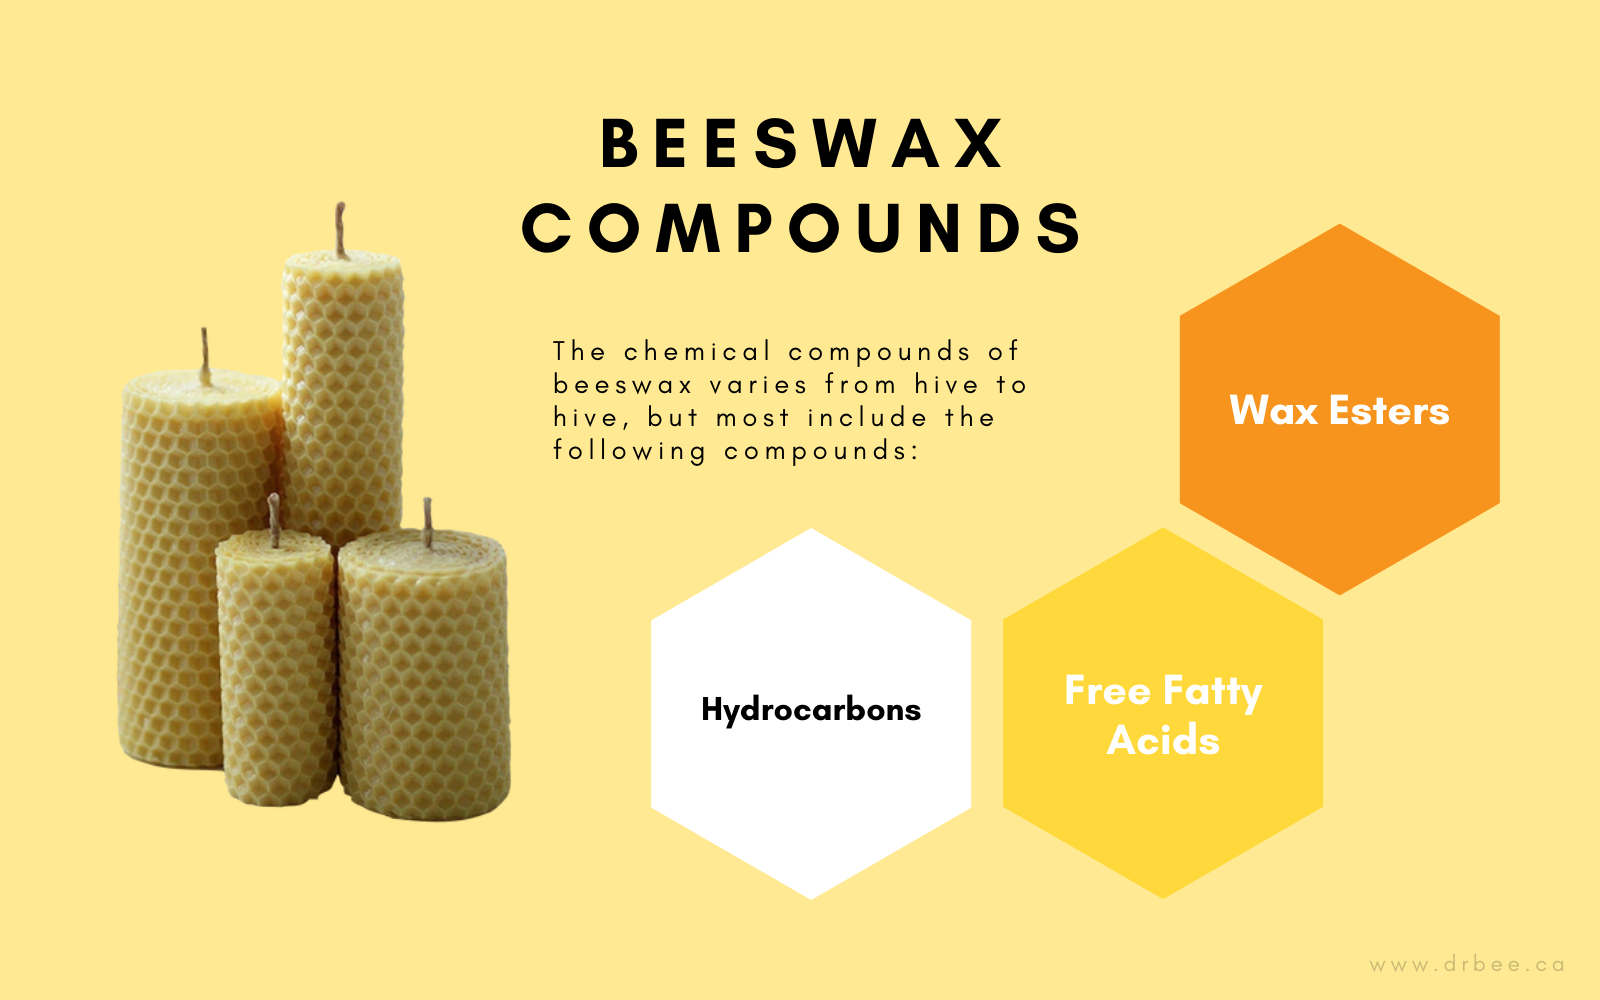 Beeswax compounds